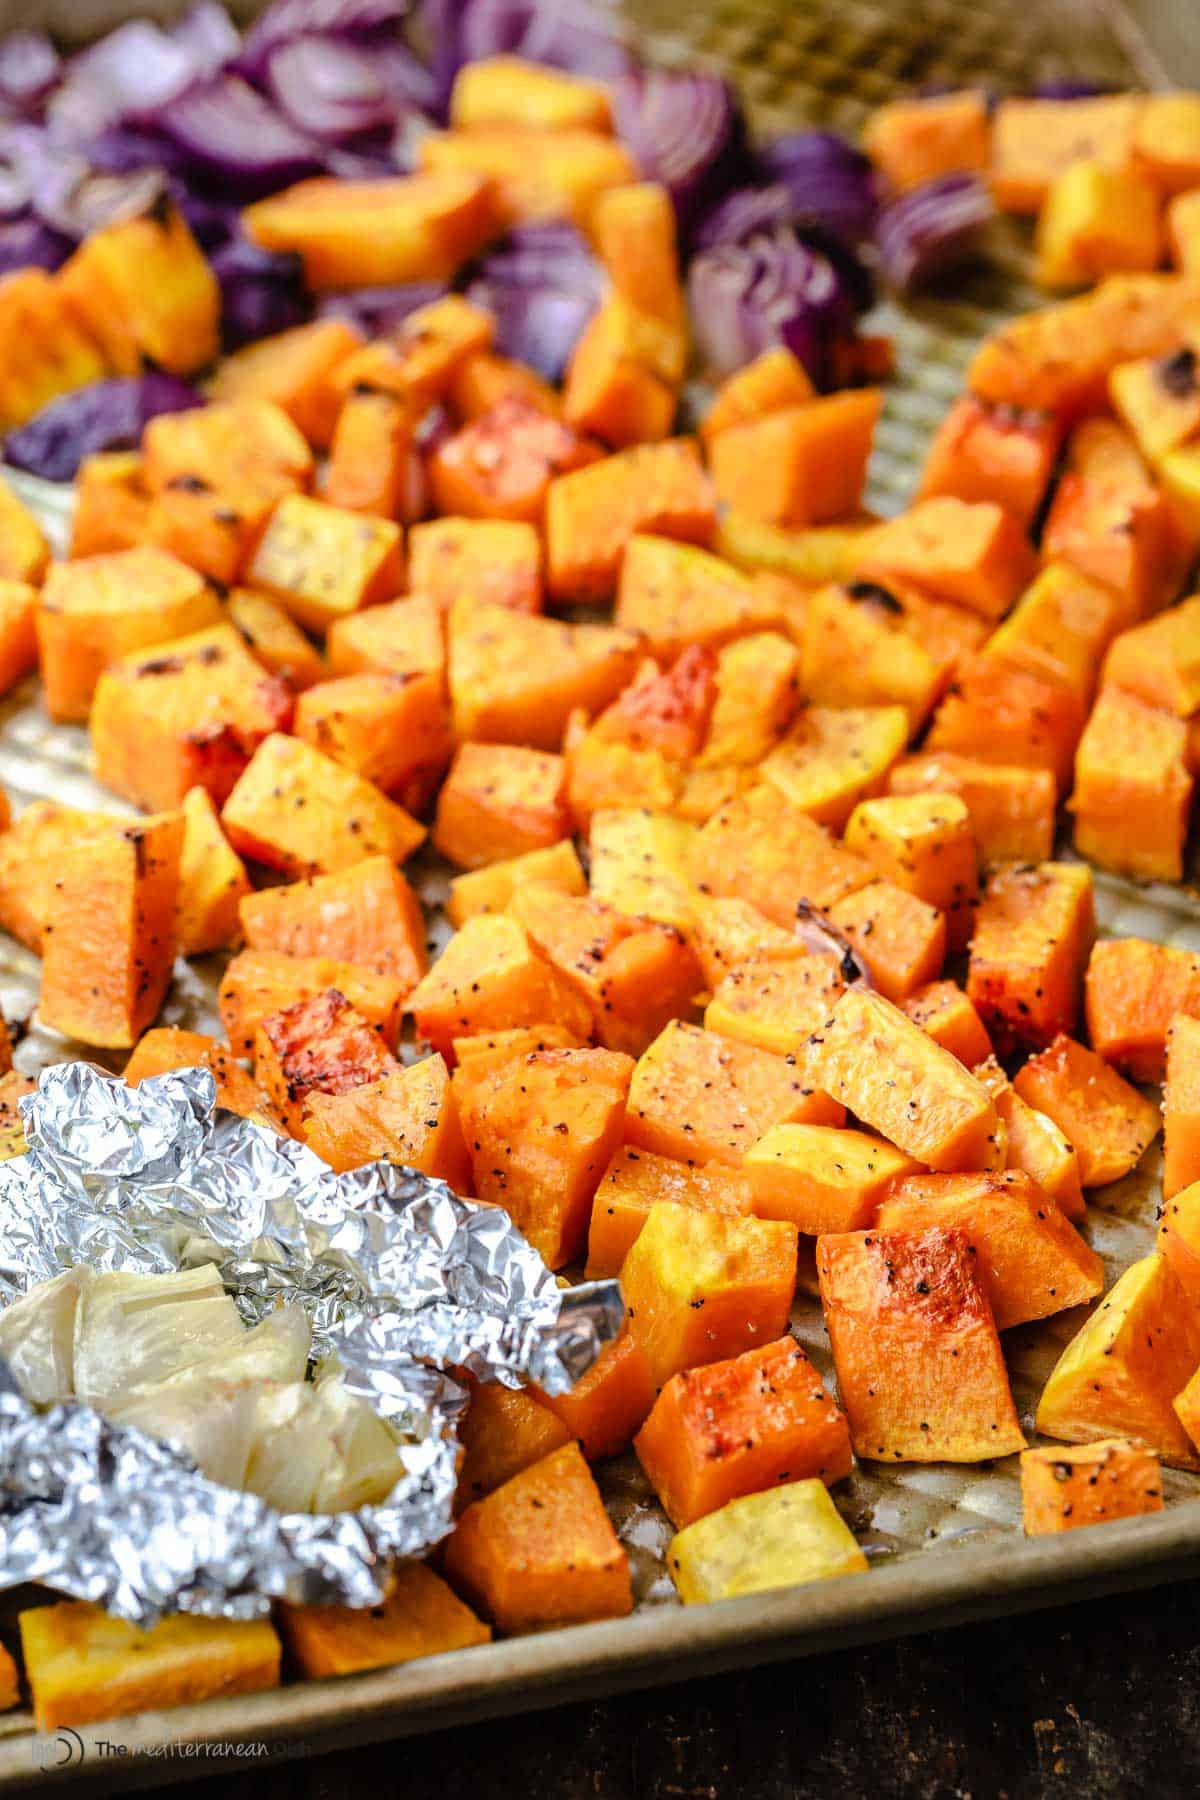 Roasted butternut squash pieces on a baking dish